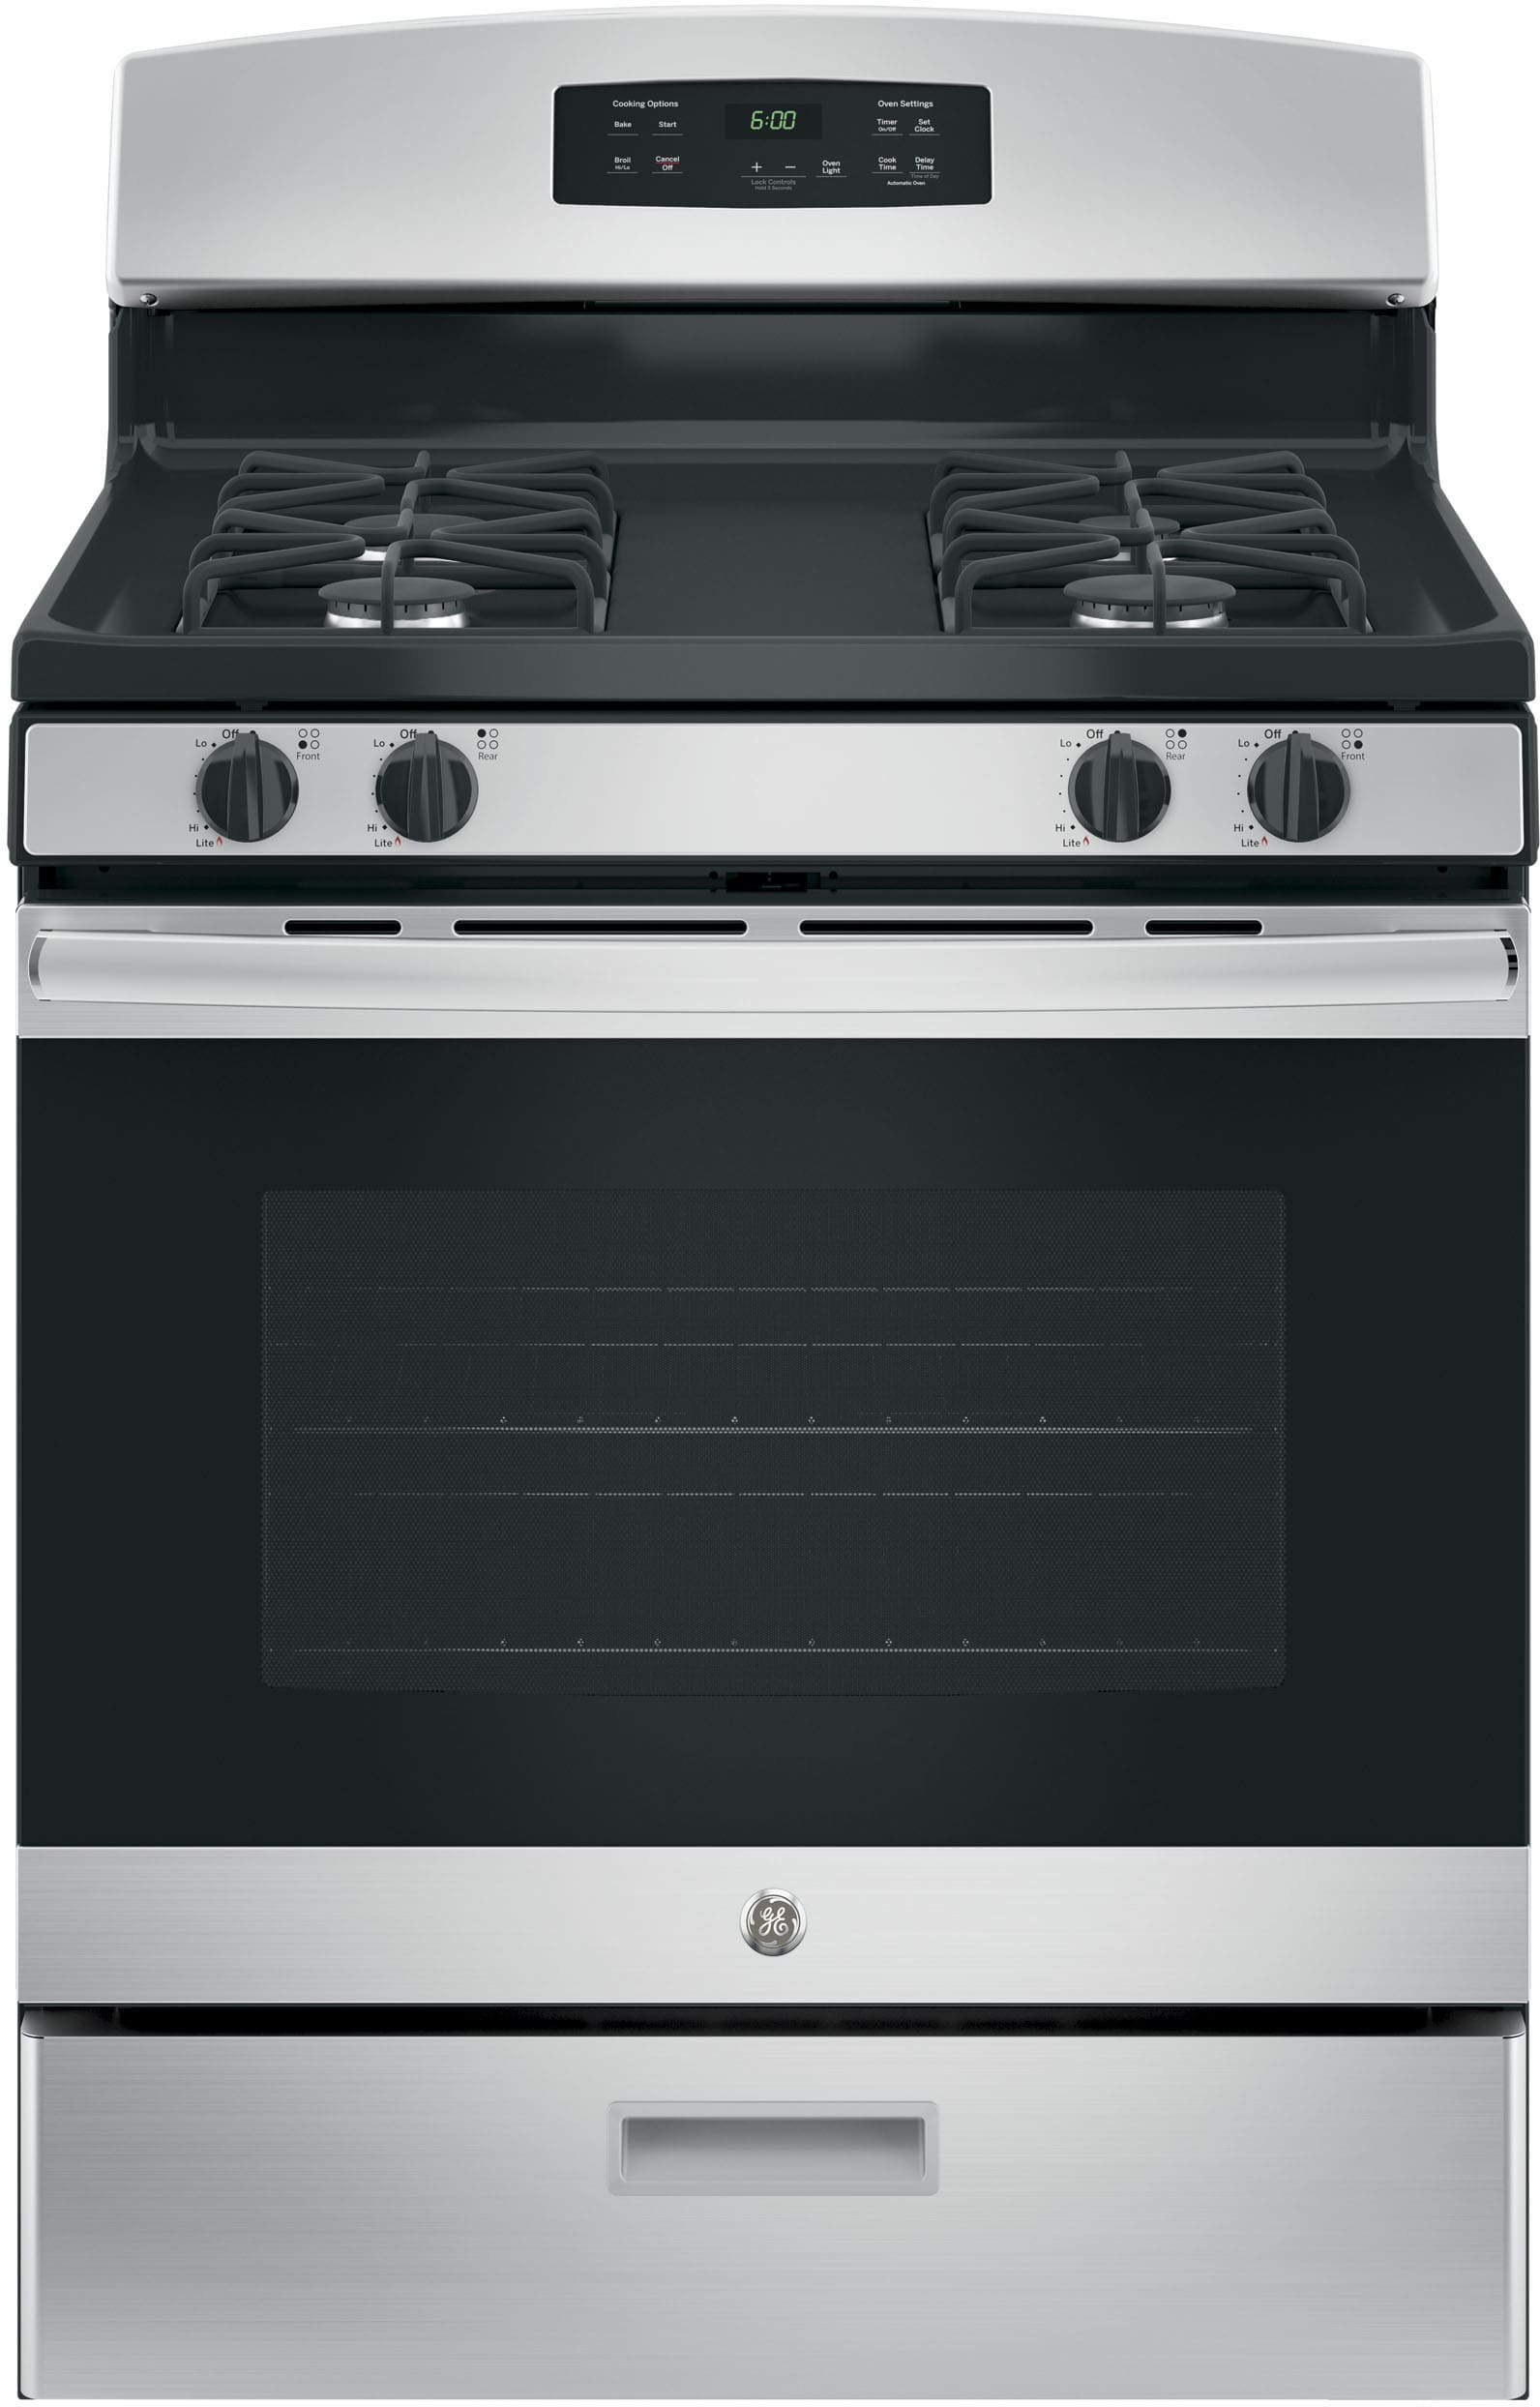 Ge Jgbs60rekss 30 Inch Freestanding Gas Range With Precise